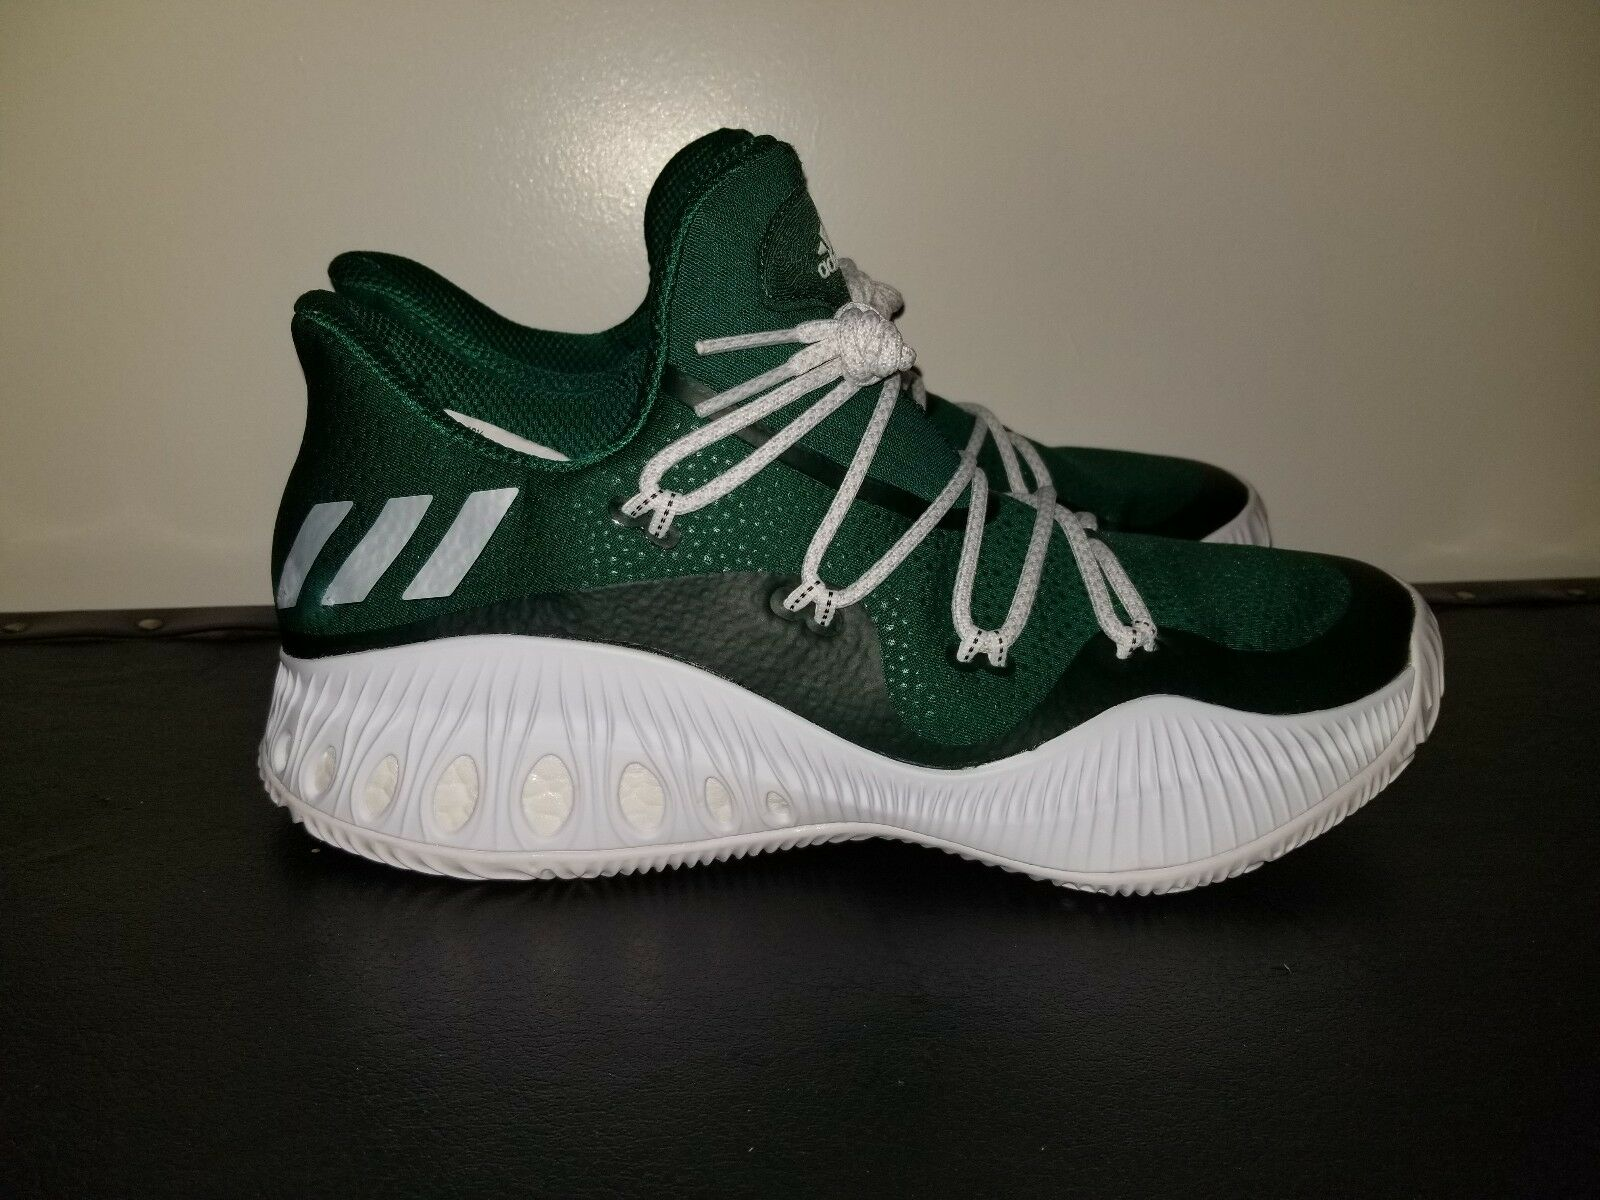 ADIDAS Crazy Explosive Low - BY3246 Cheap women's shoes women's shoes